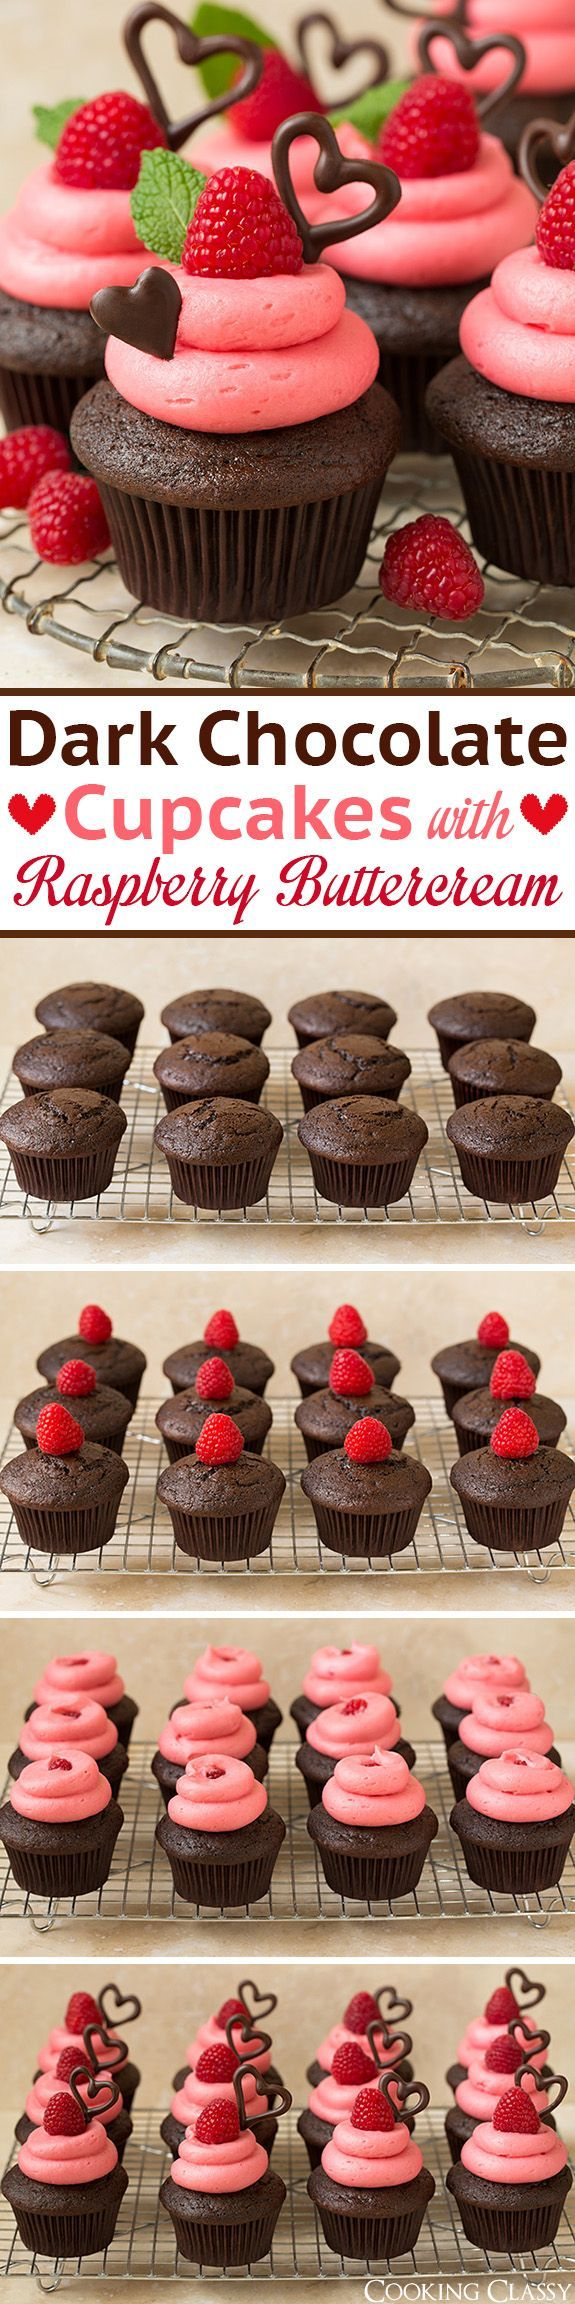 815 best All About Cupcakes images on Pinterest | Cupcake recipes ...